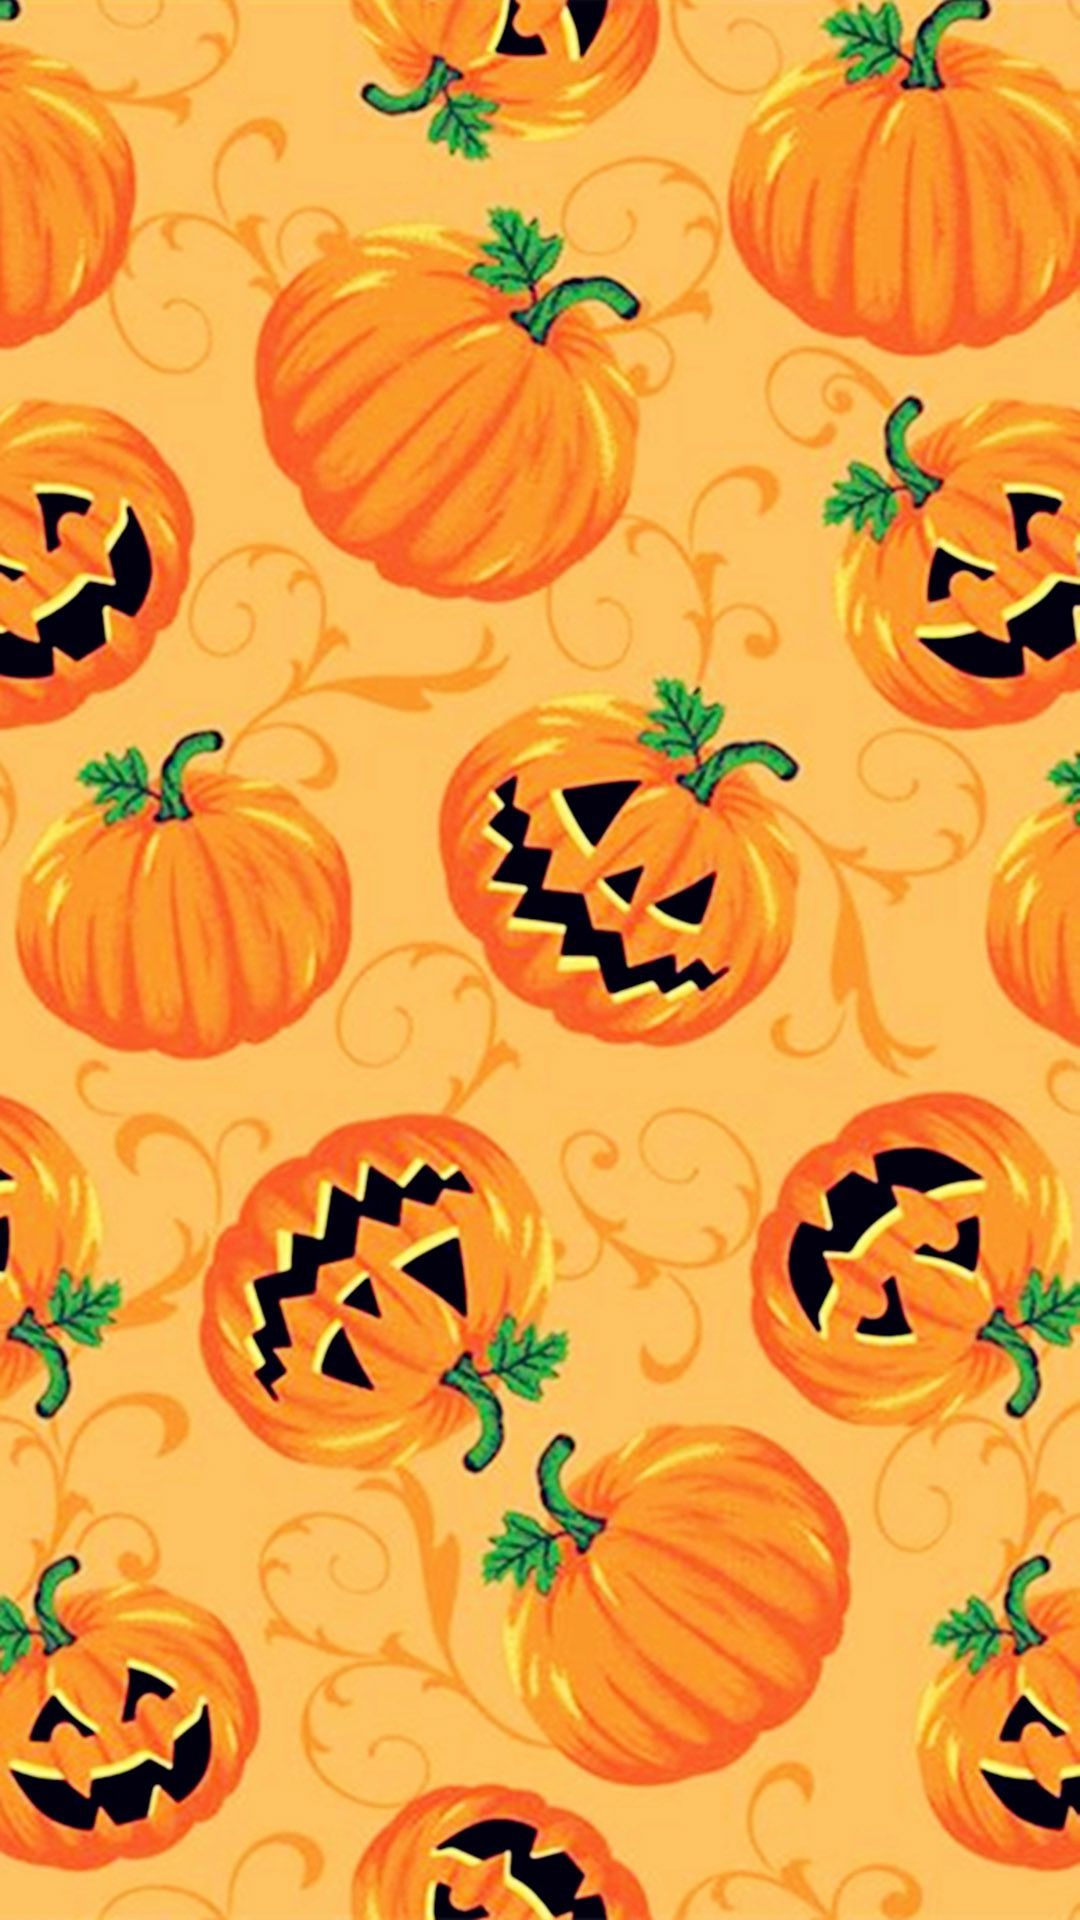 Pumpkins Halloween wallpaper iphone, Halloween wallpaper